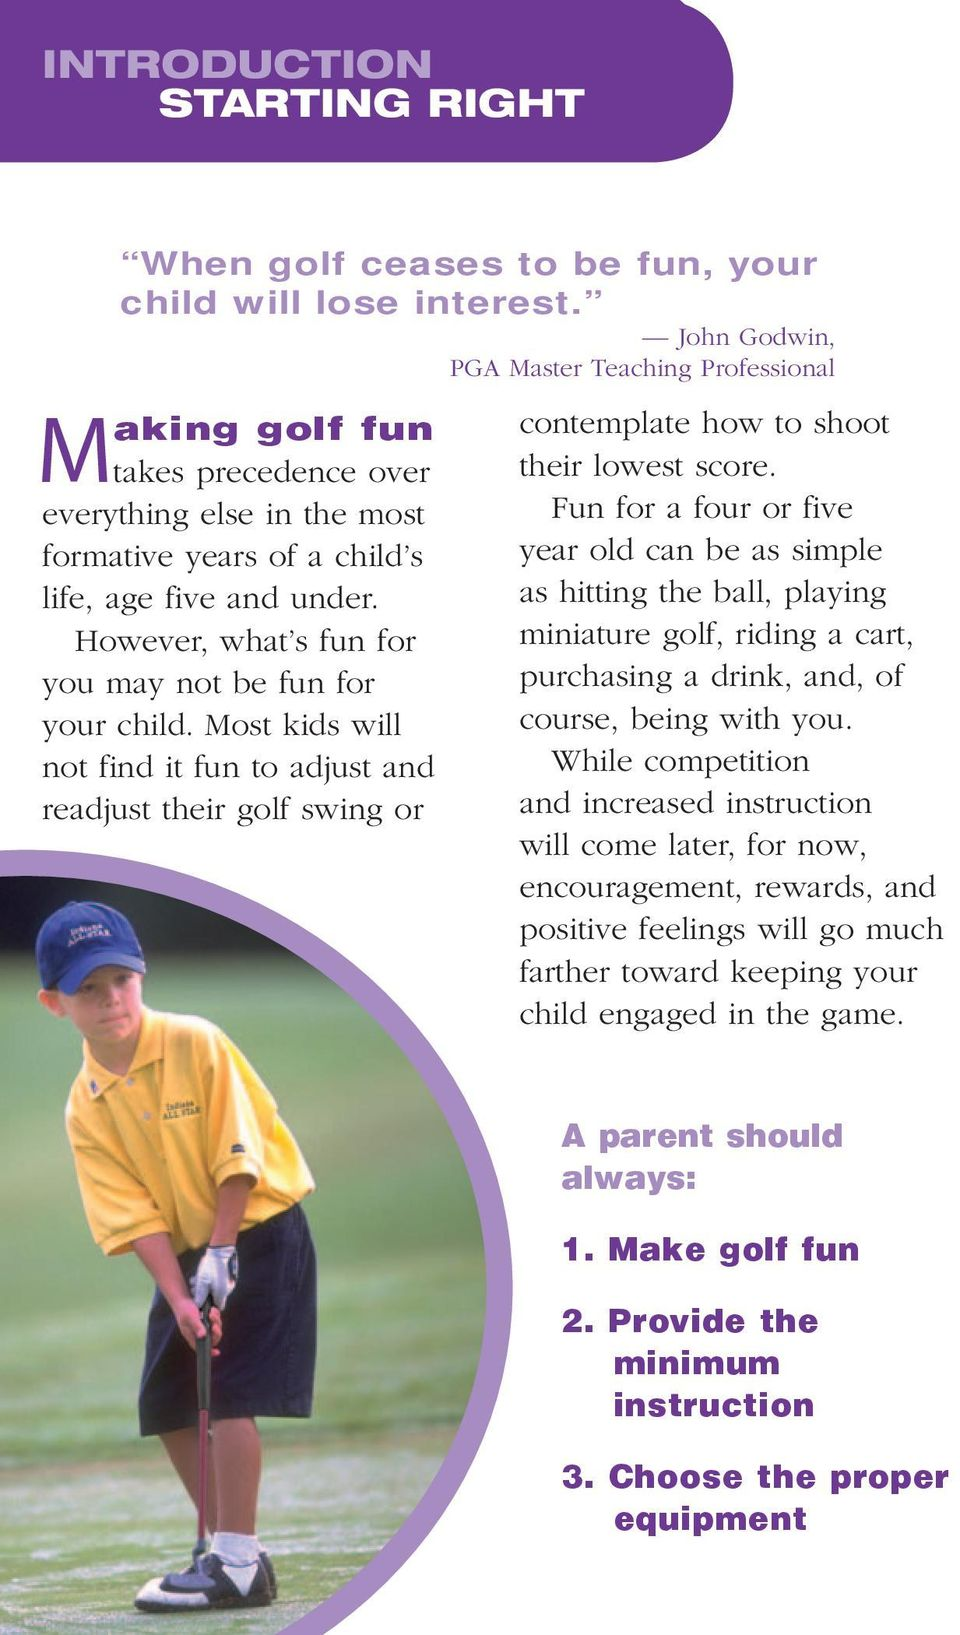 However, what s fun for you may not be fun for your child. Most kids will not find it fun to adjust and readjust their golf swing or contemplate how to shoot their lowest score.